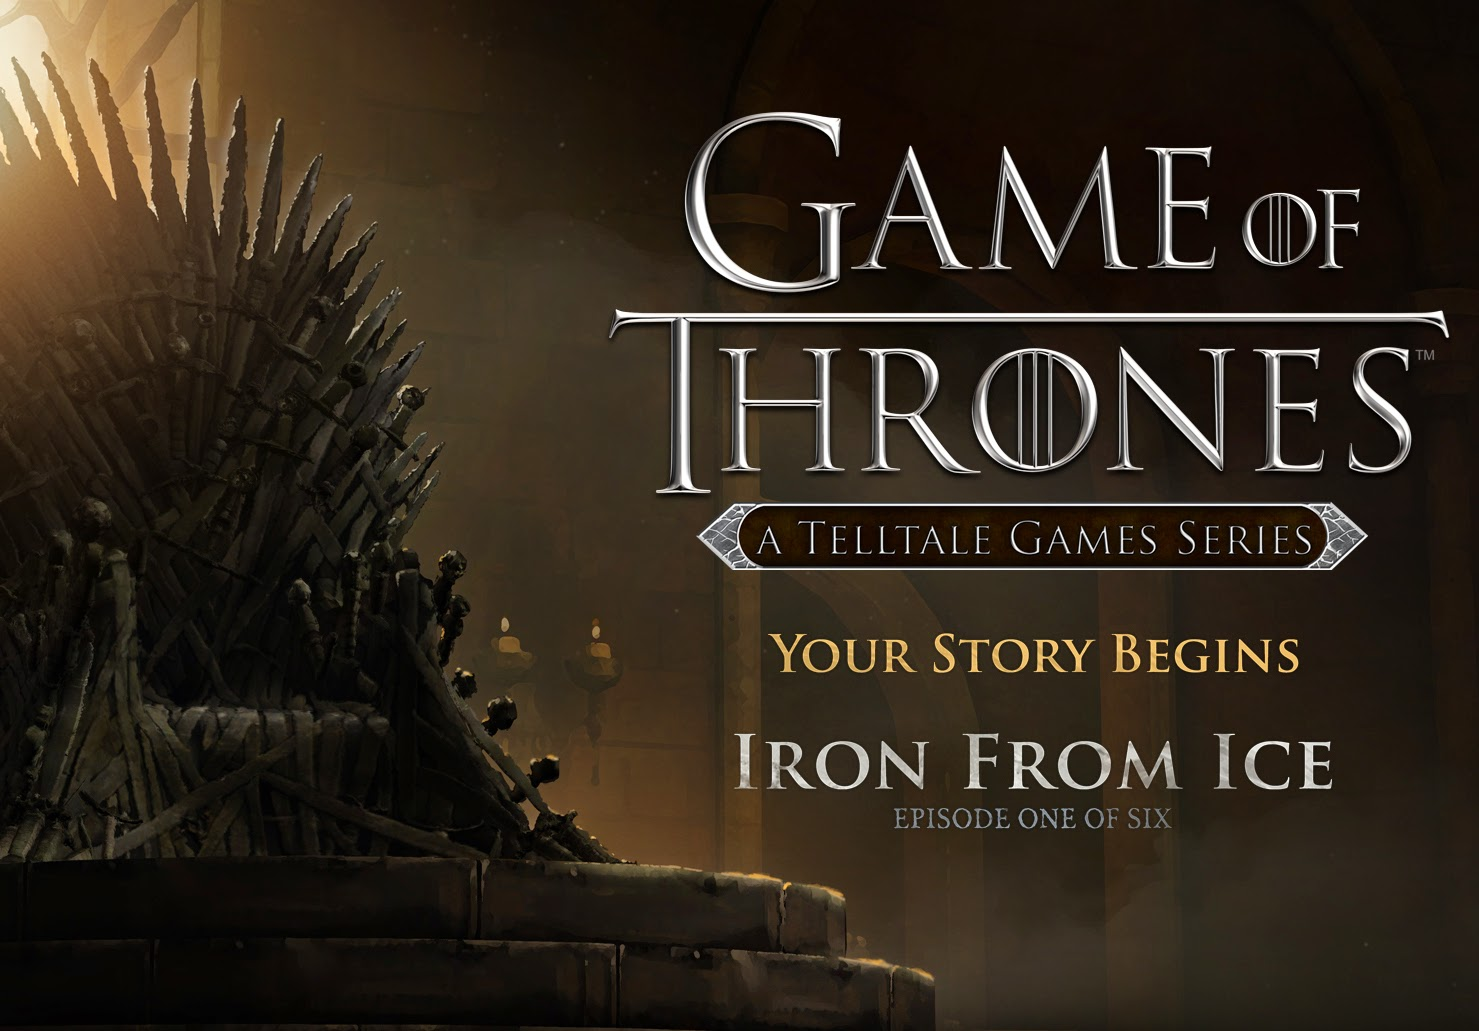 Game of Thrones: A Telltale Games Series - First Look